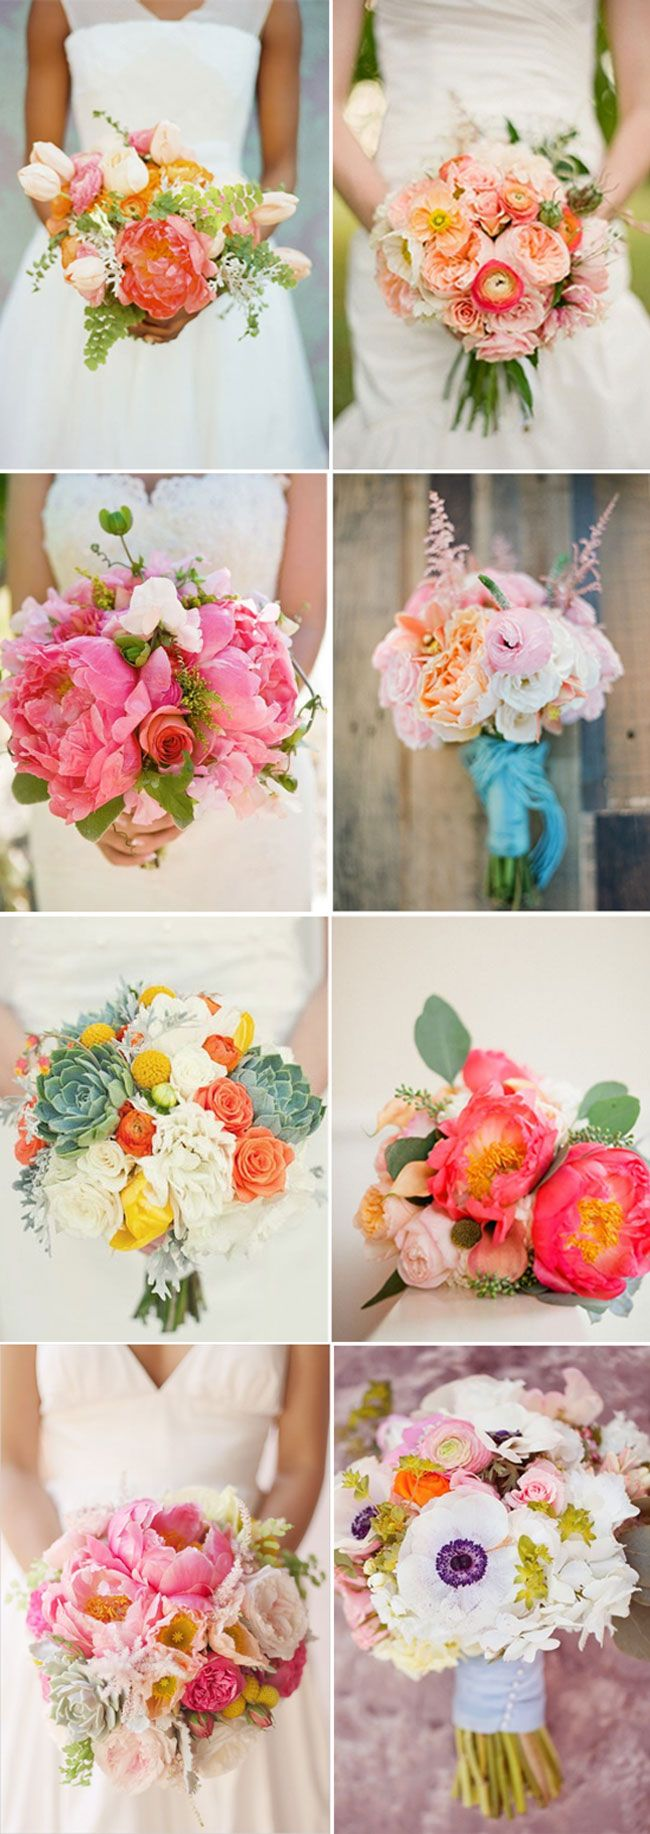 Bouquet ideas for the summer bride #weddings